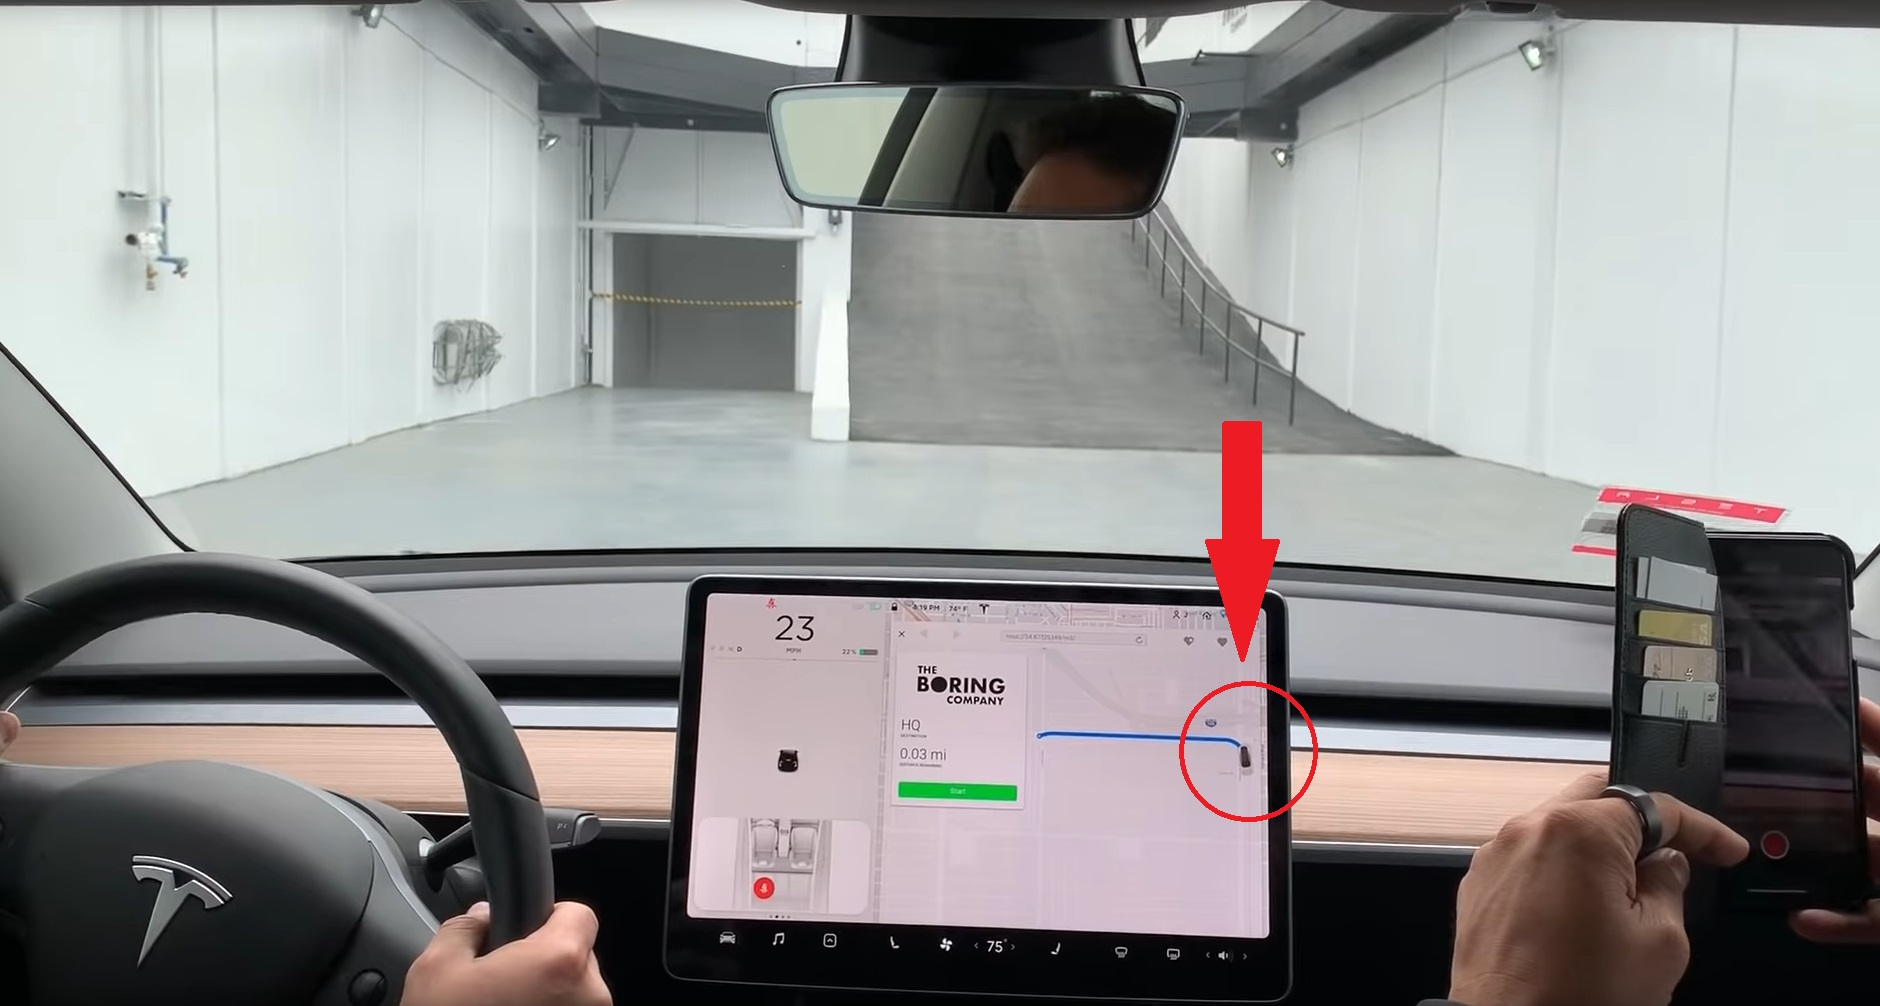 Tesla Model 3 zips through Boring Co. tunnel at 116 mph in latest video